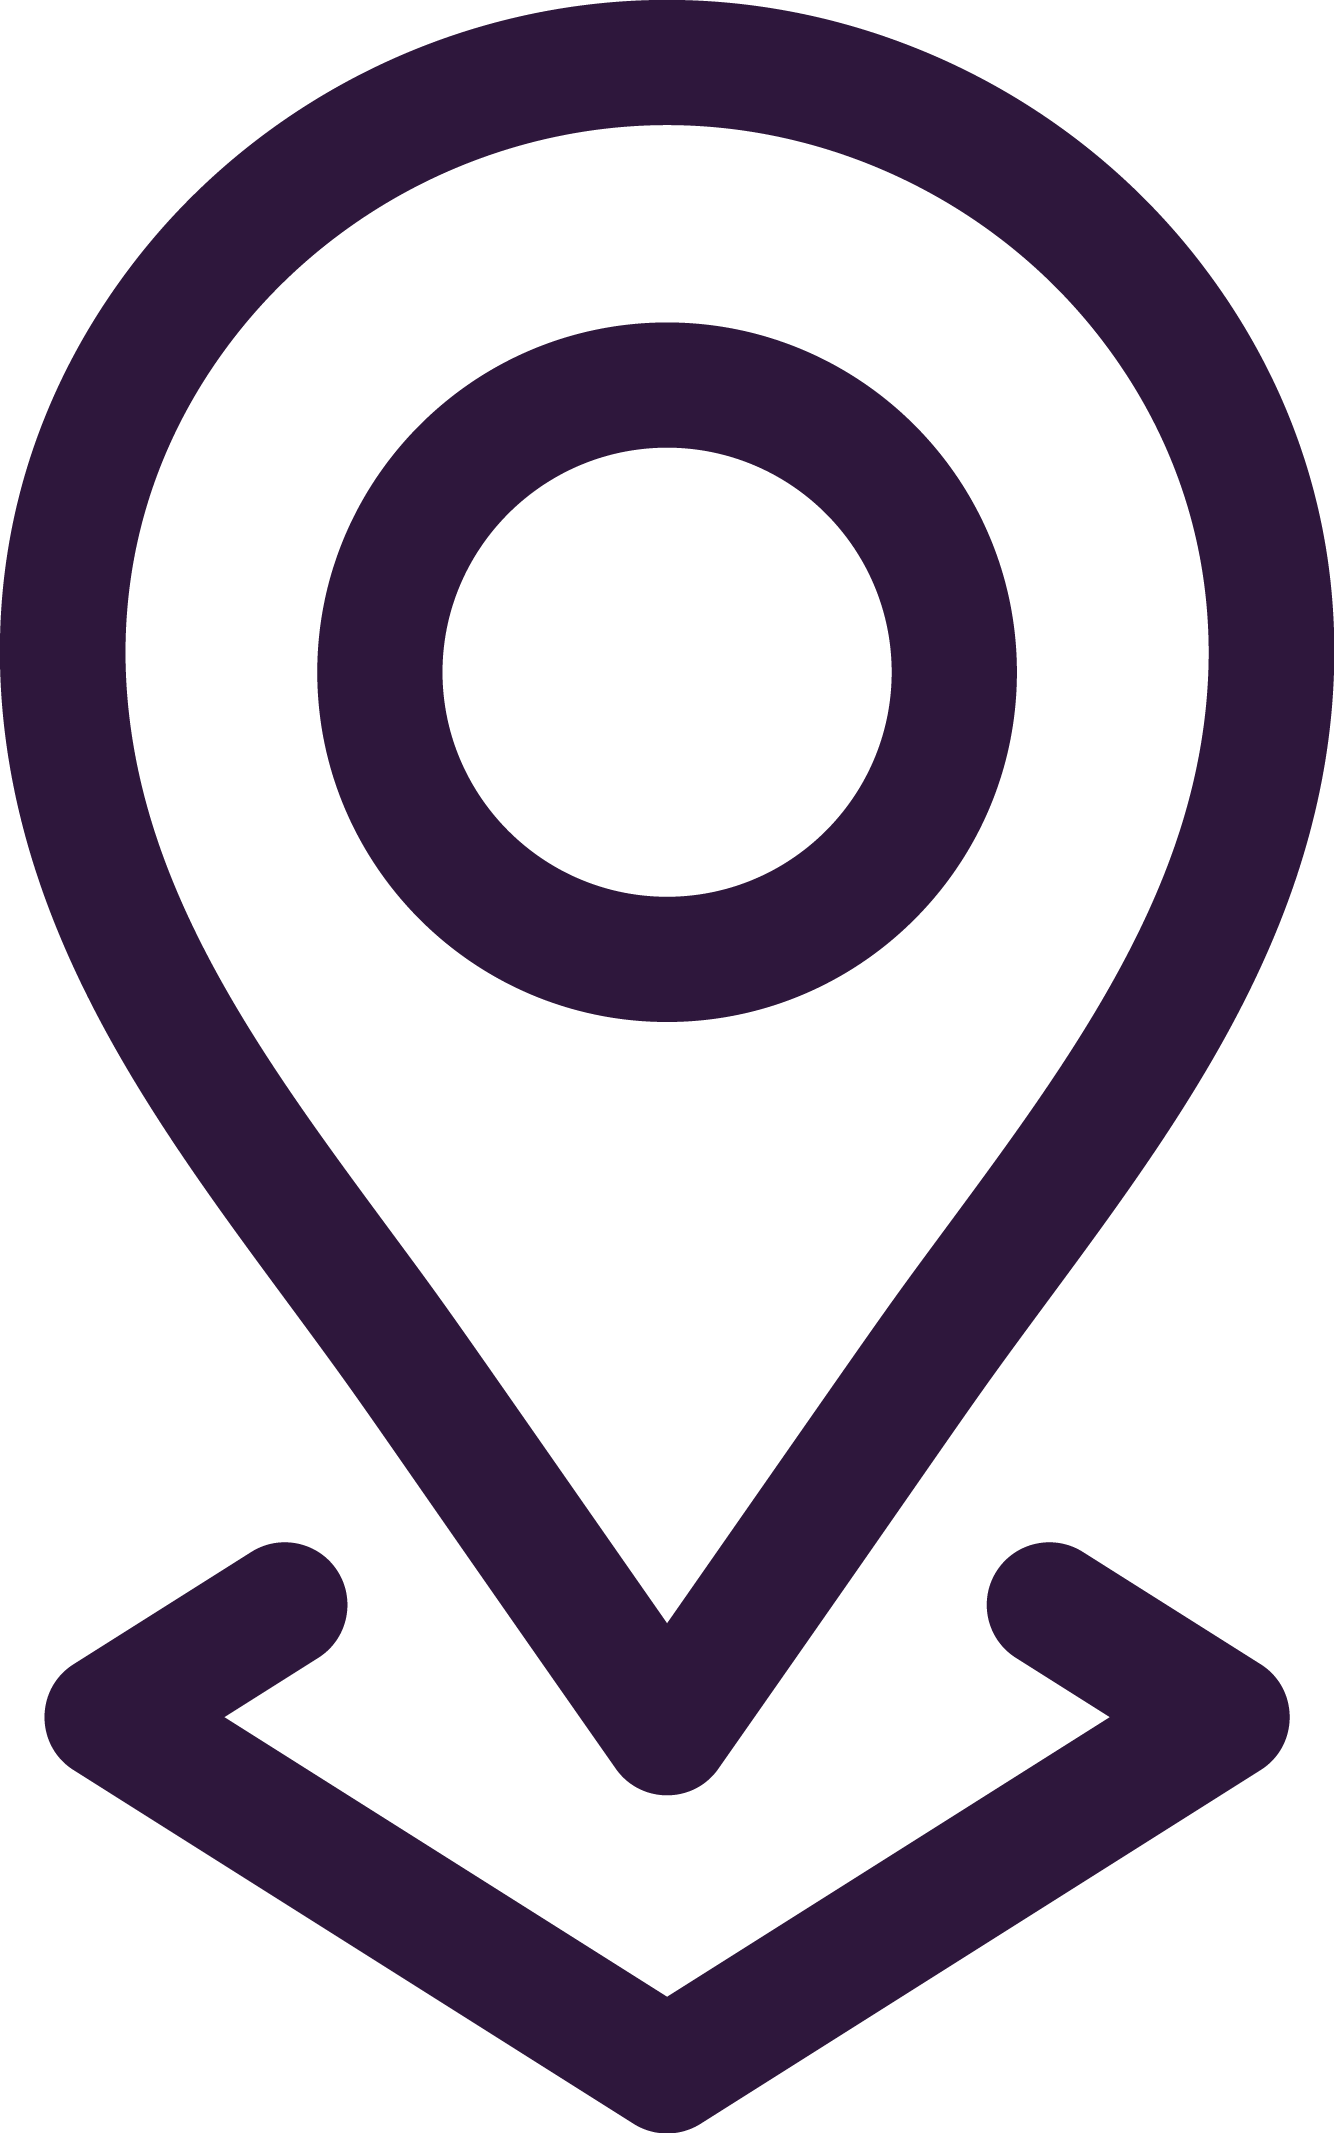 image of location pin representing roar diy seo software location services